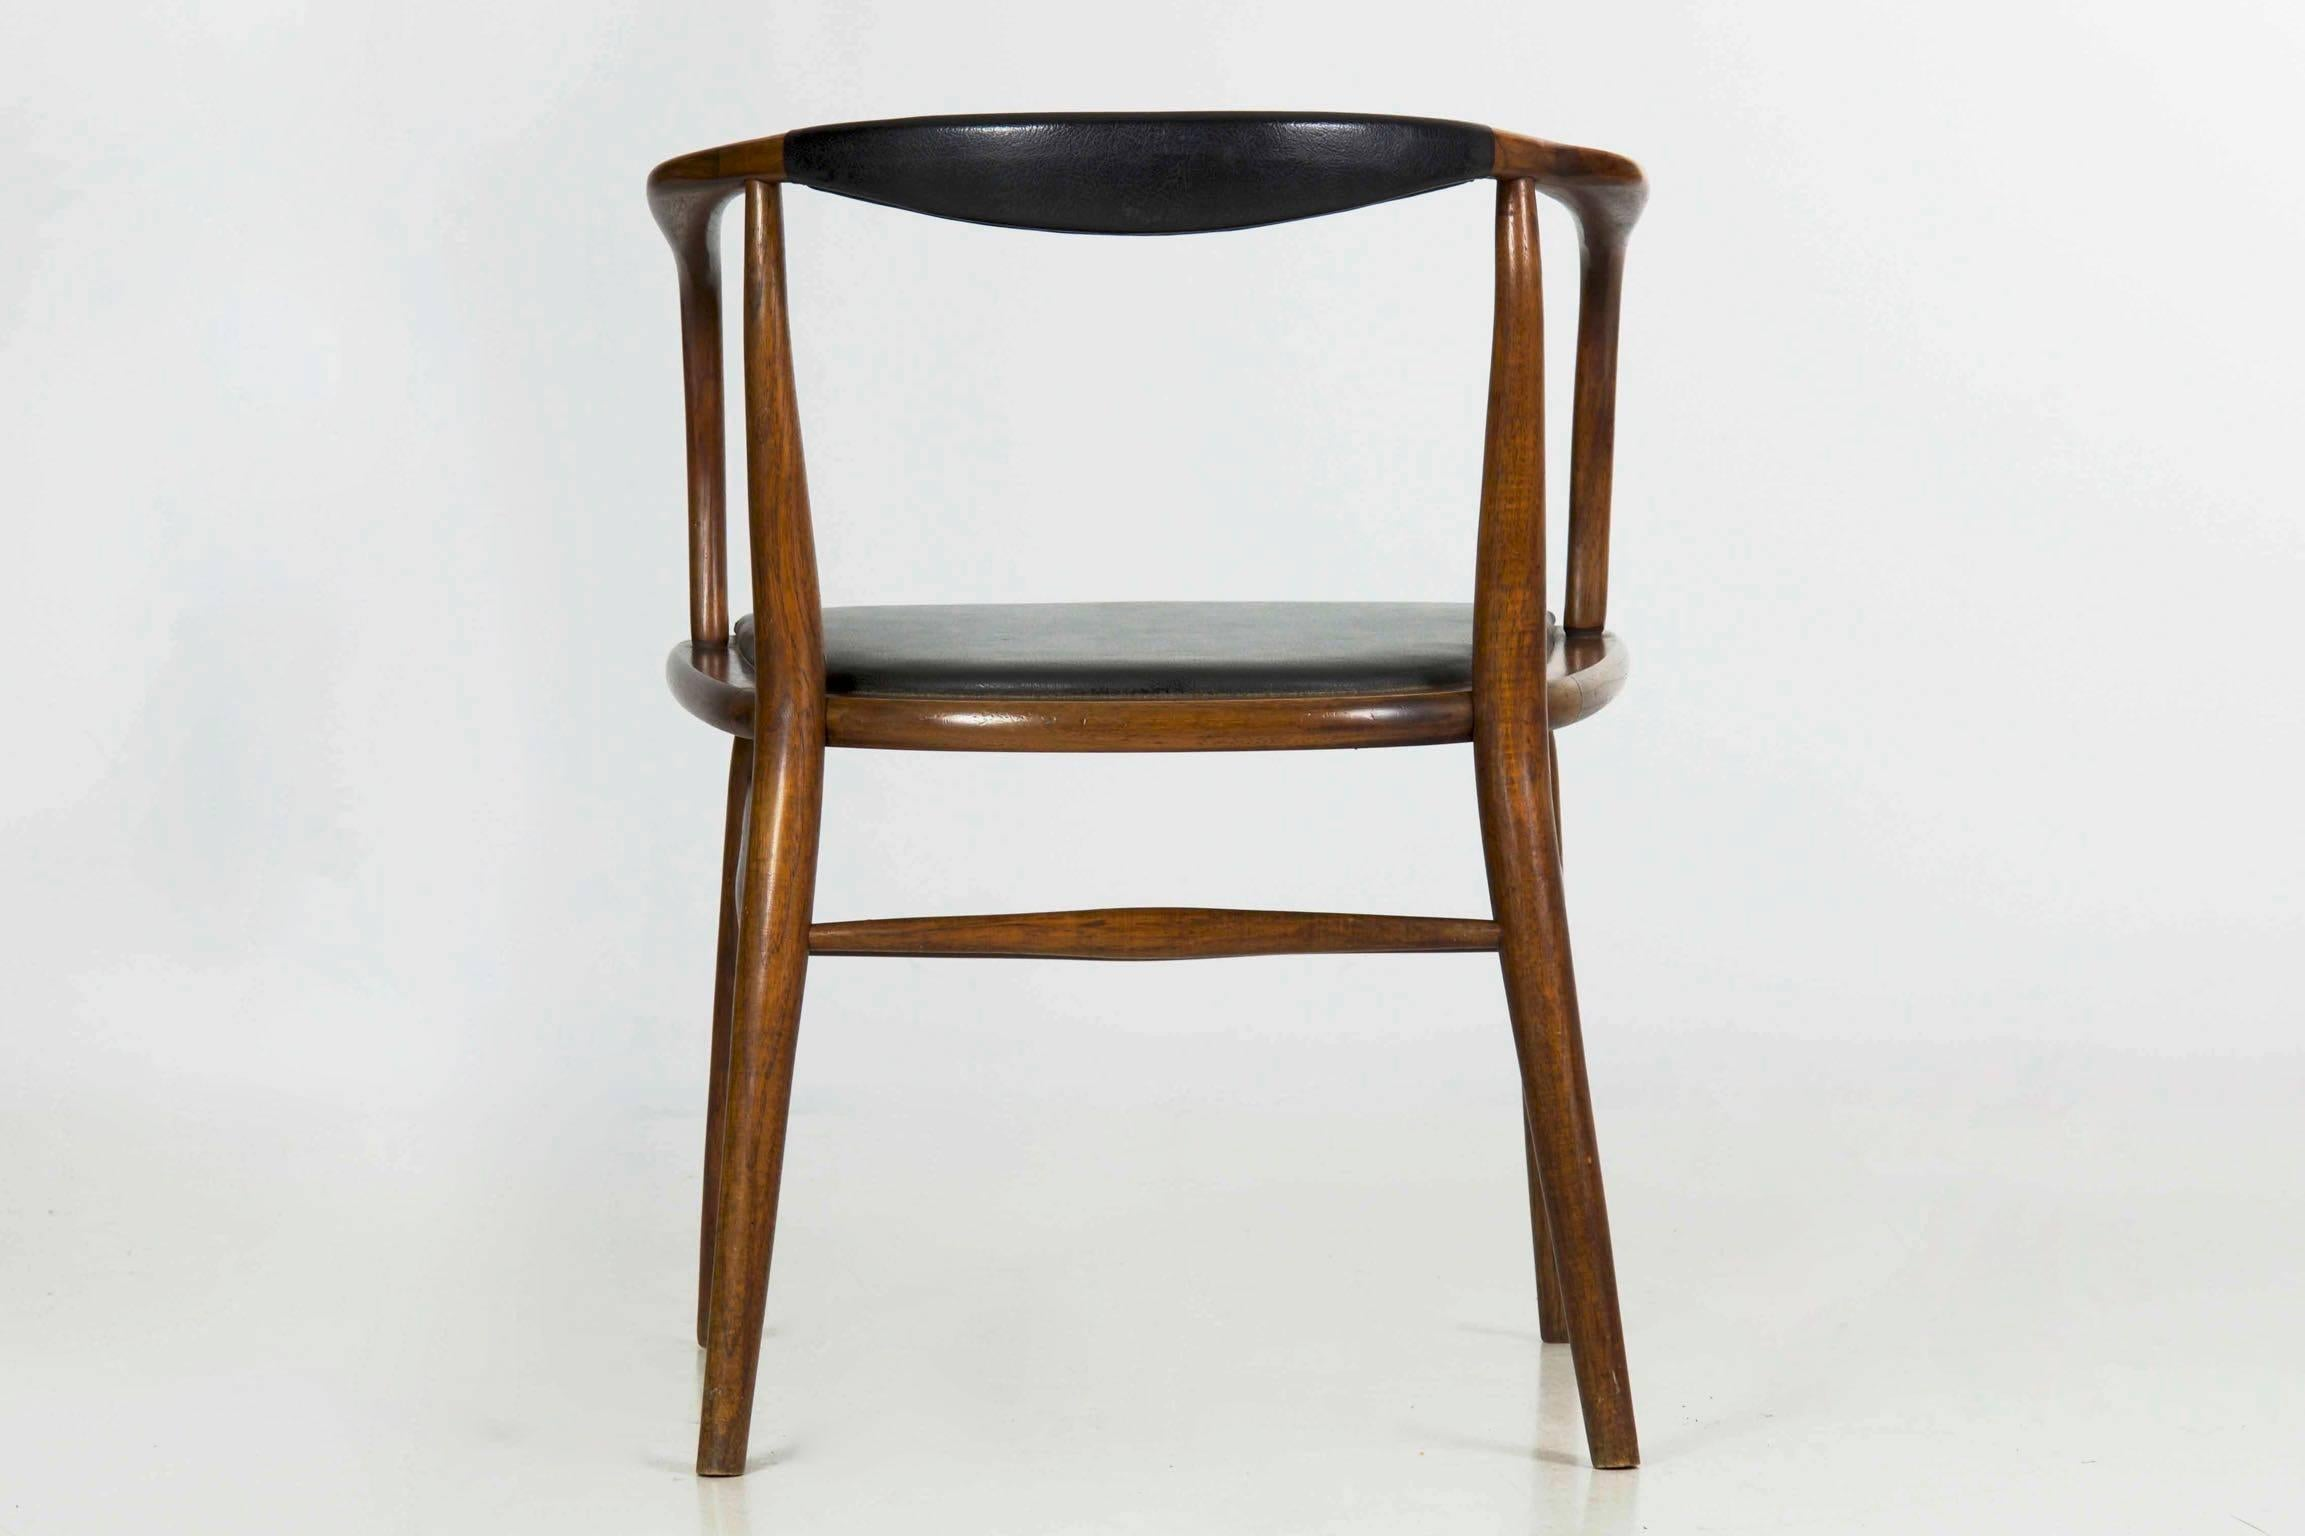 Faux Leather Vintage Mid Century Modern Boling Chair Co. Bentwood Armchair,  Circa 1958